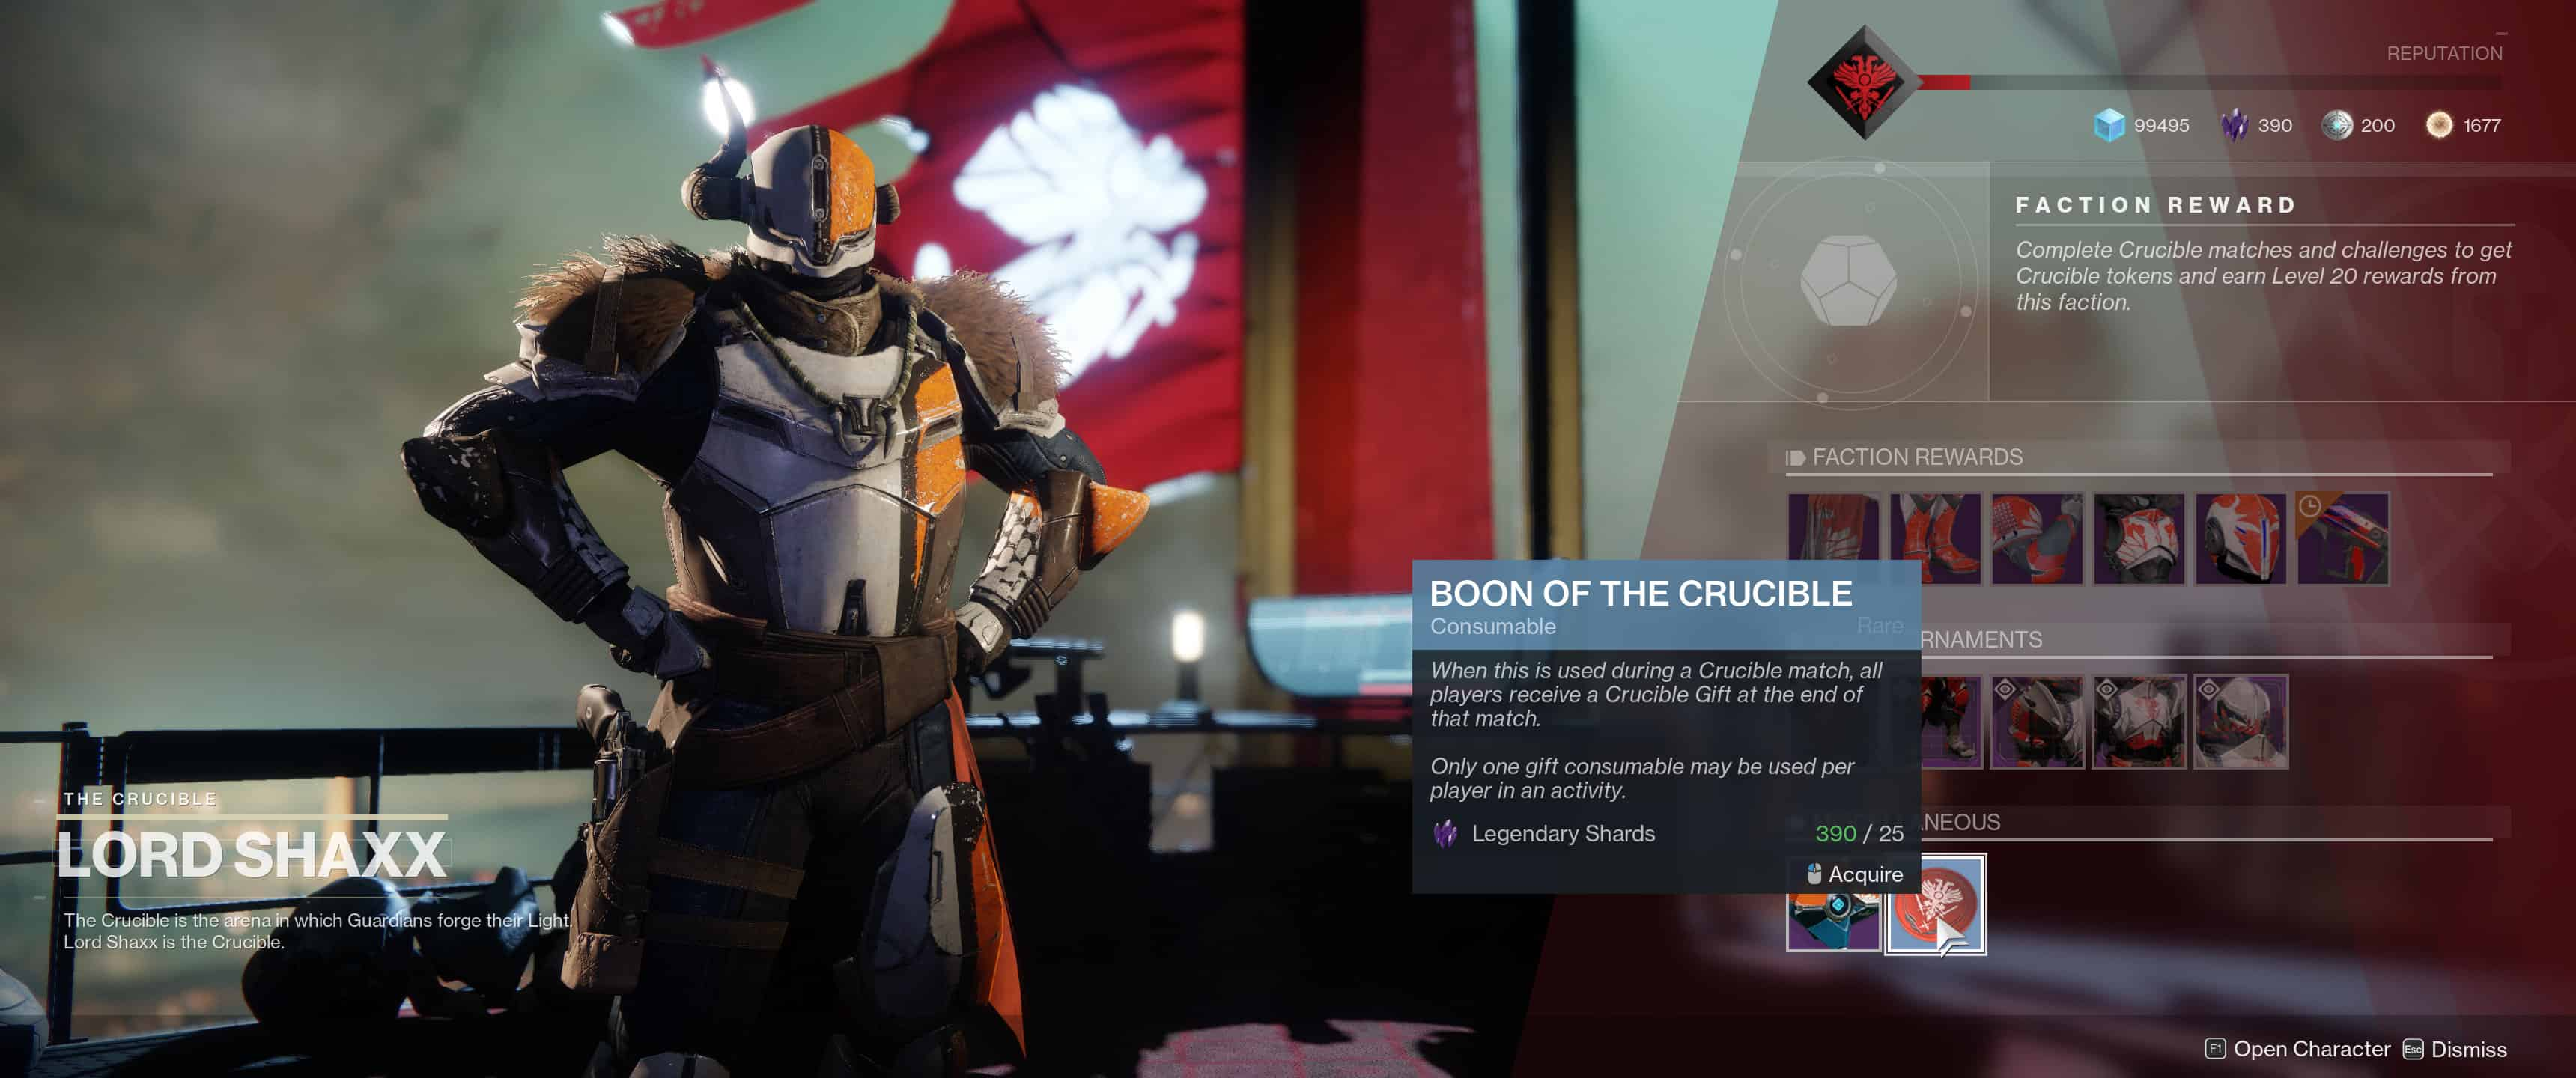 Destiny 2 - What are Vanguard and Crucible Boons?